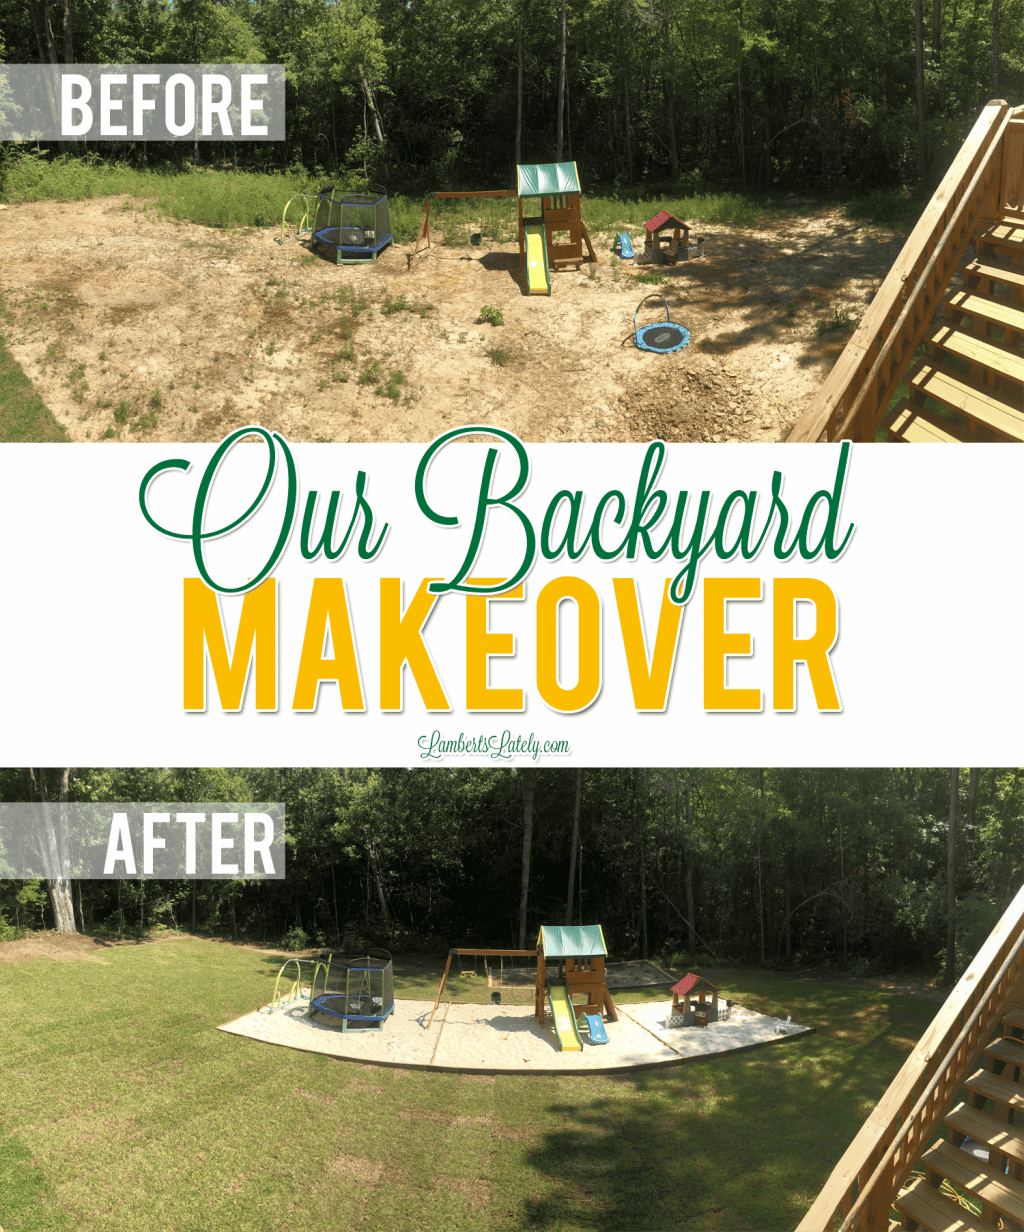 Check out the before and after of our backyard makeover, including how we incorporated an area for kids, a veggie garden, and landscaping that maximizes the space!